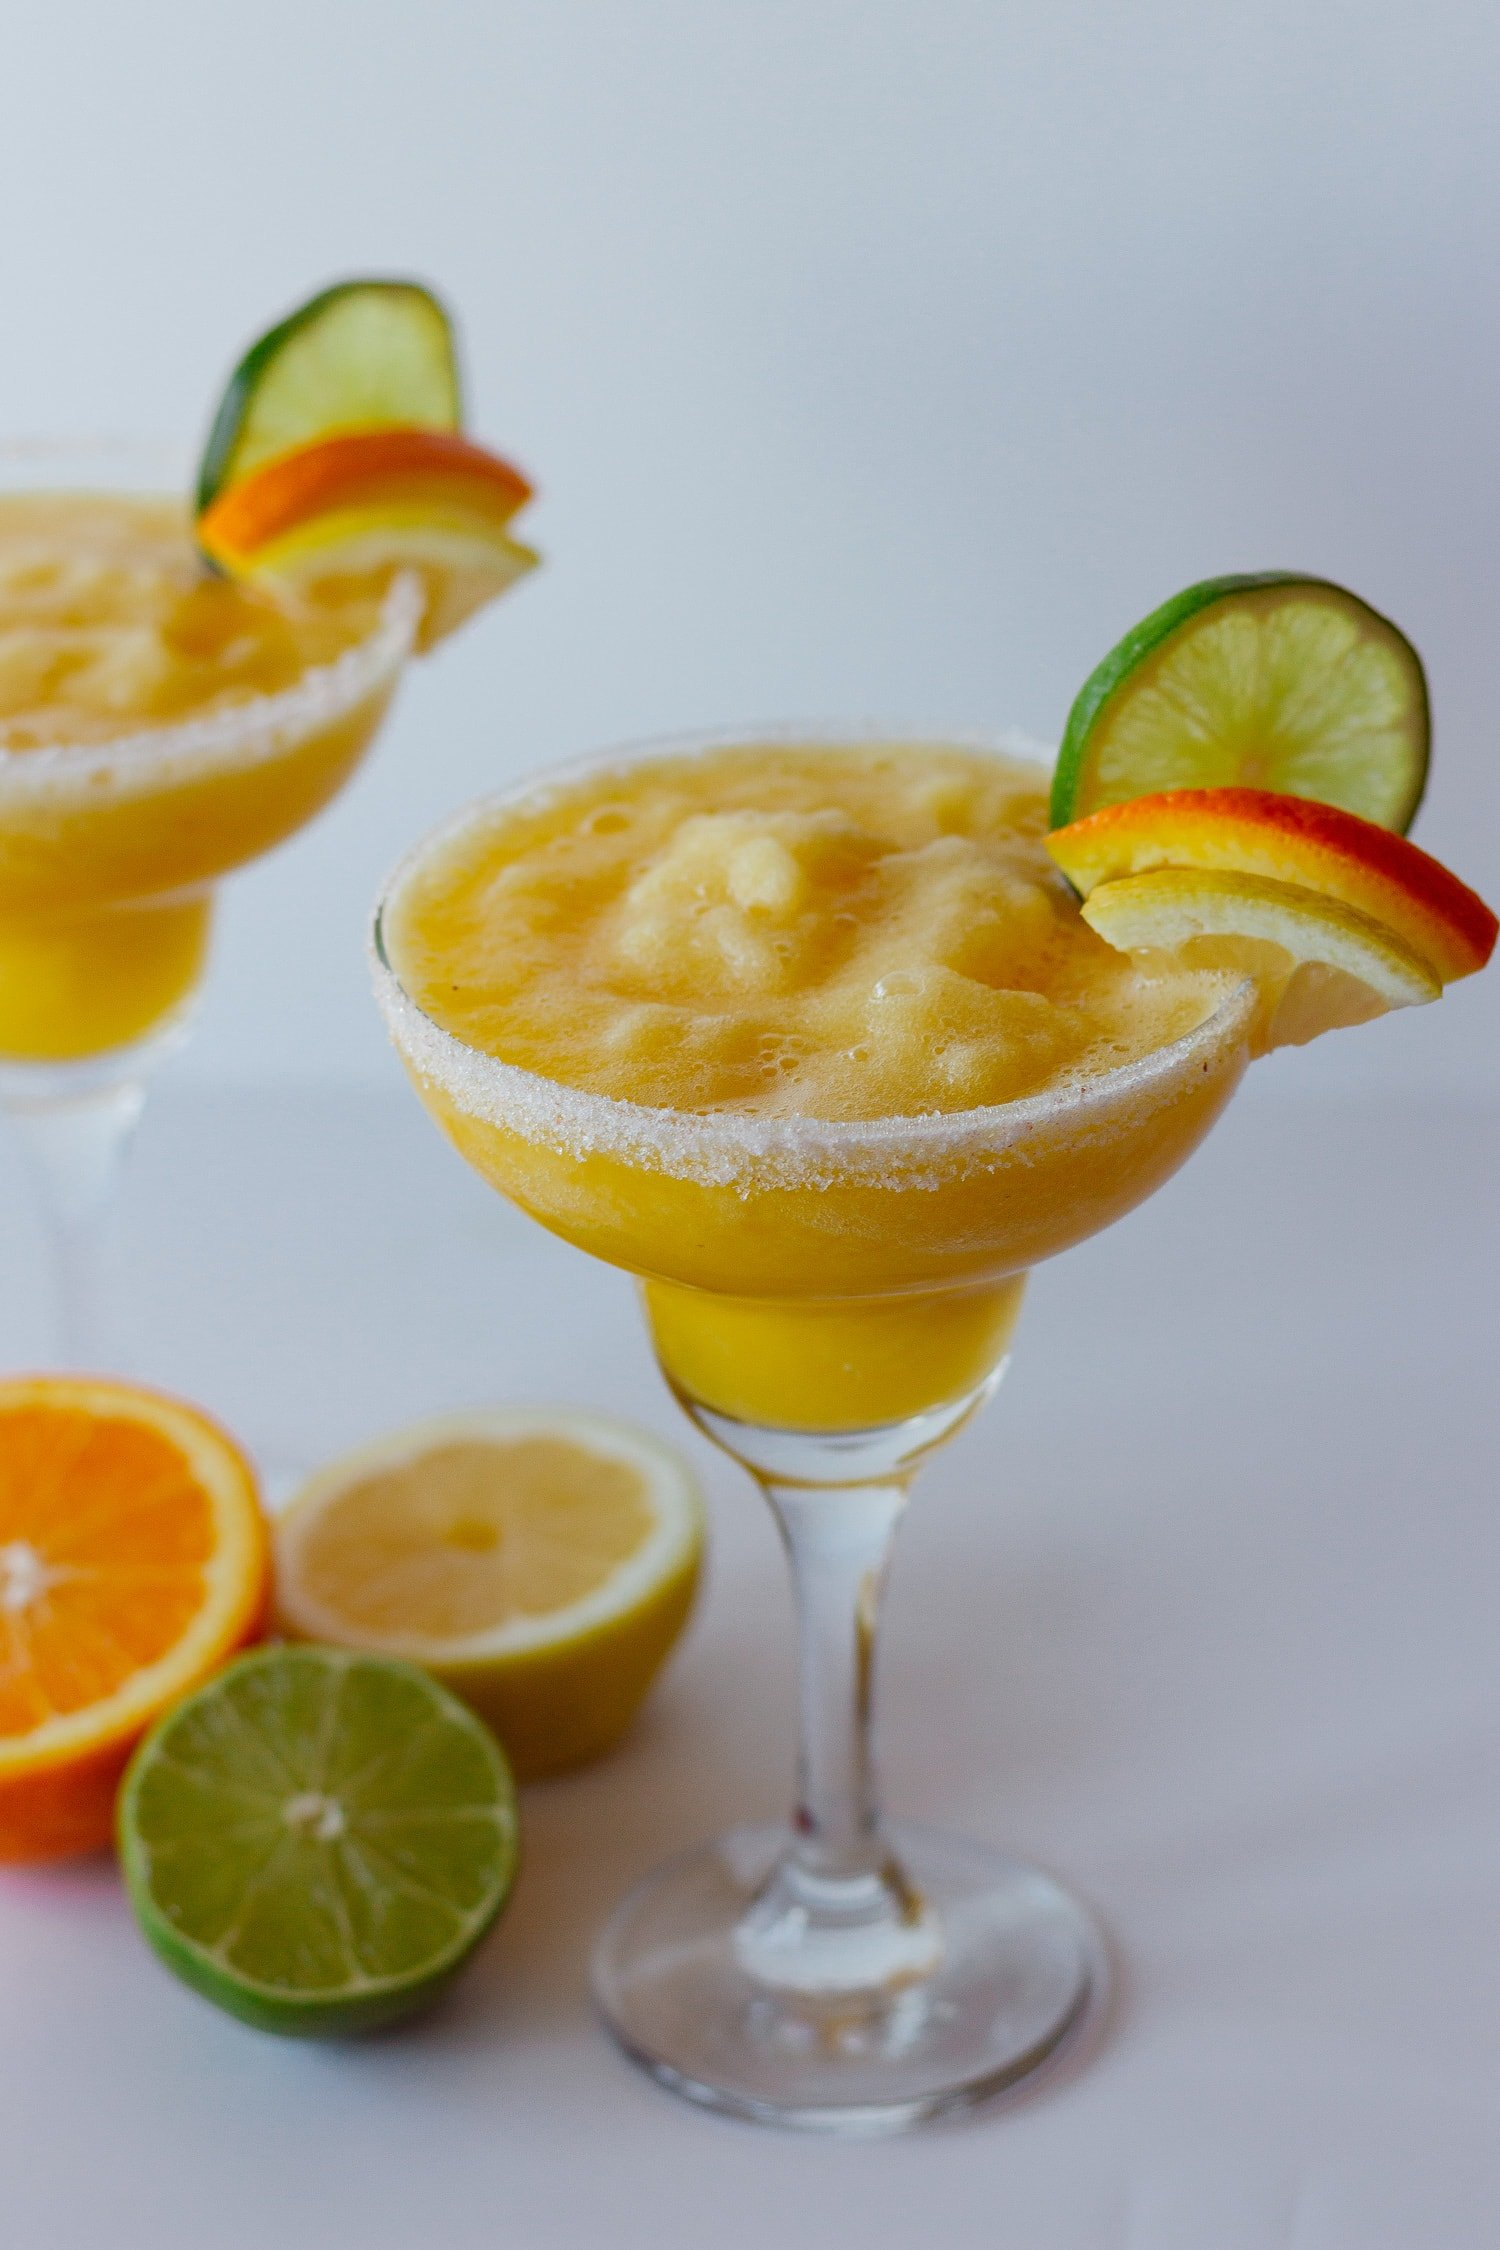 2 margarita glasses containing fresh citrus margarita on a light background